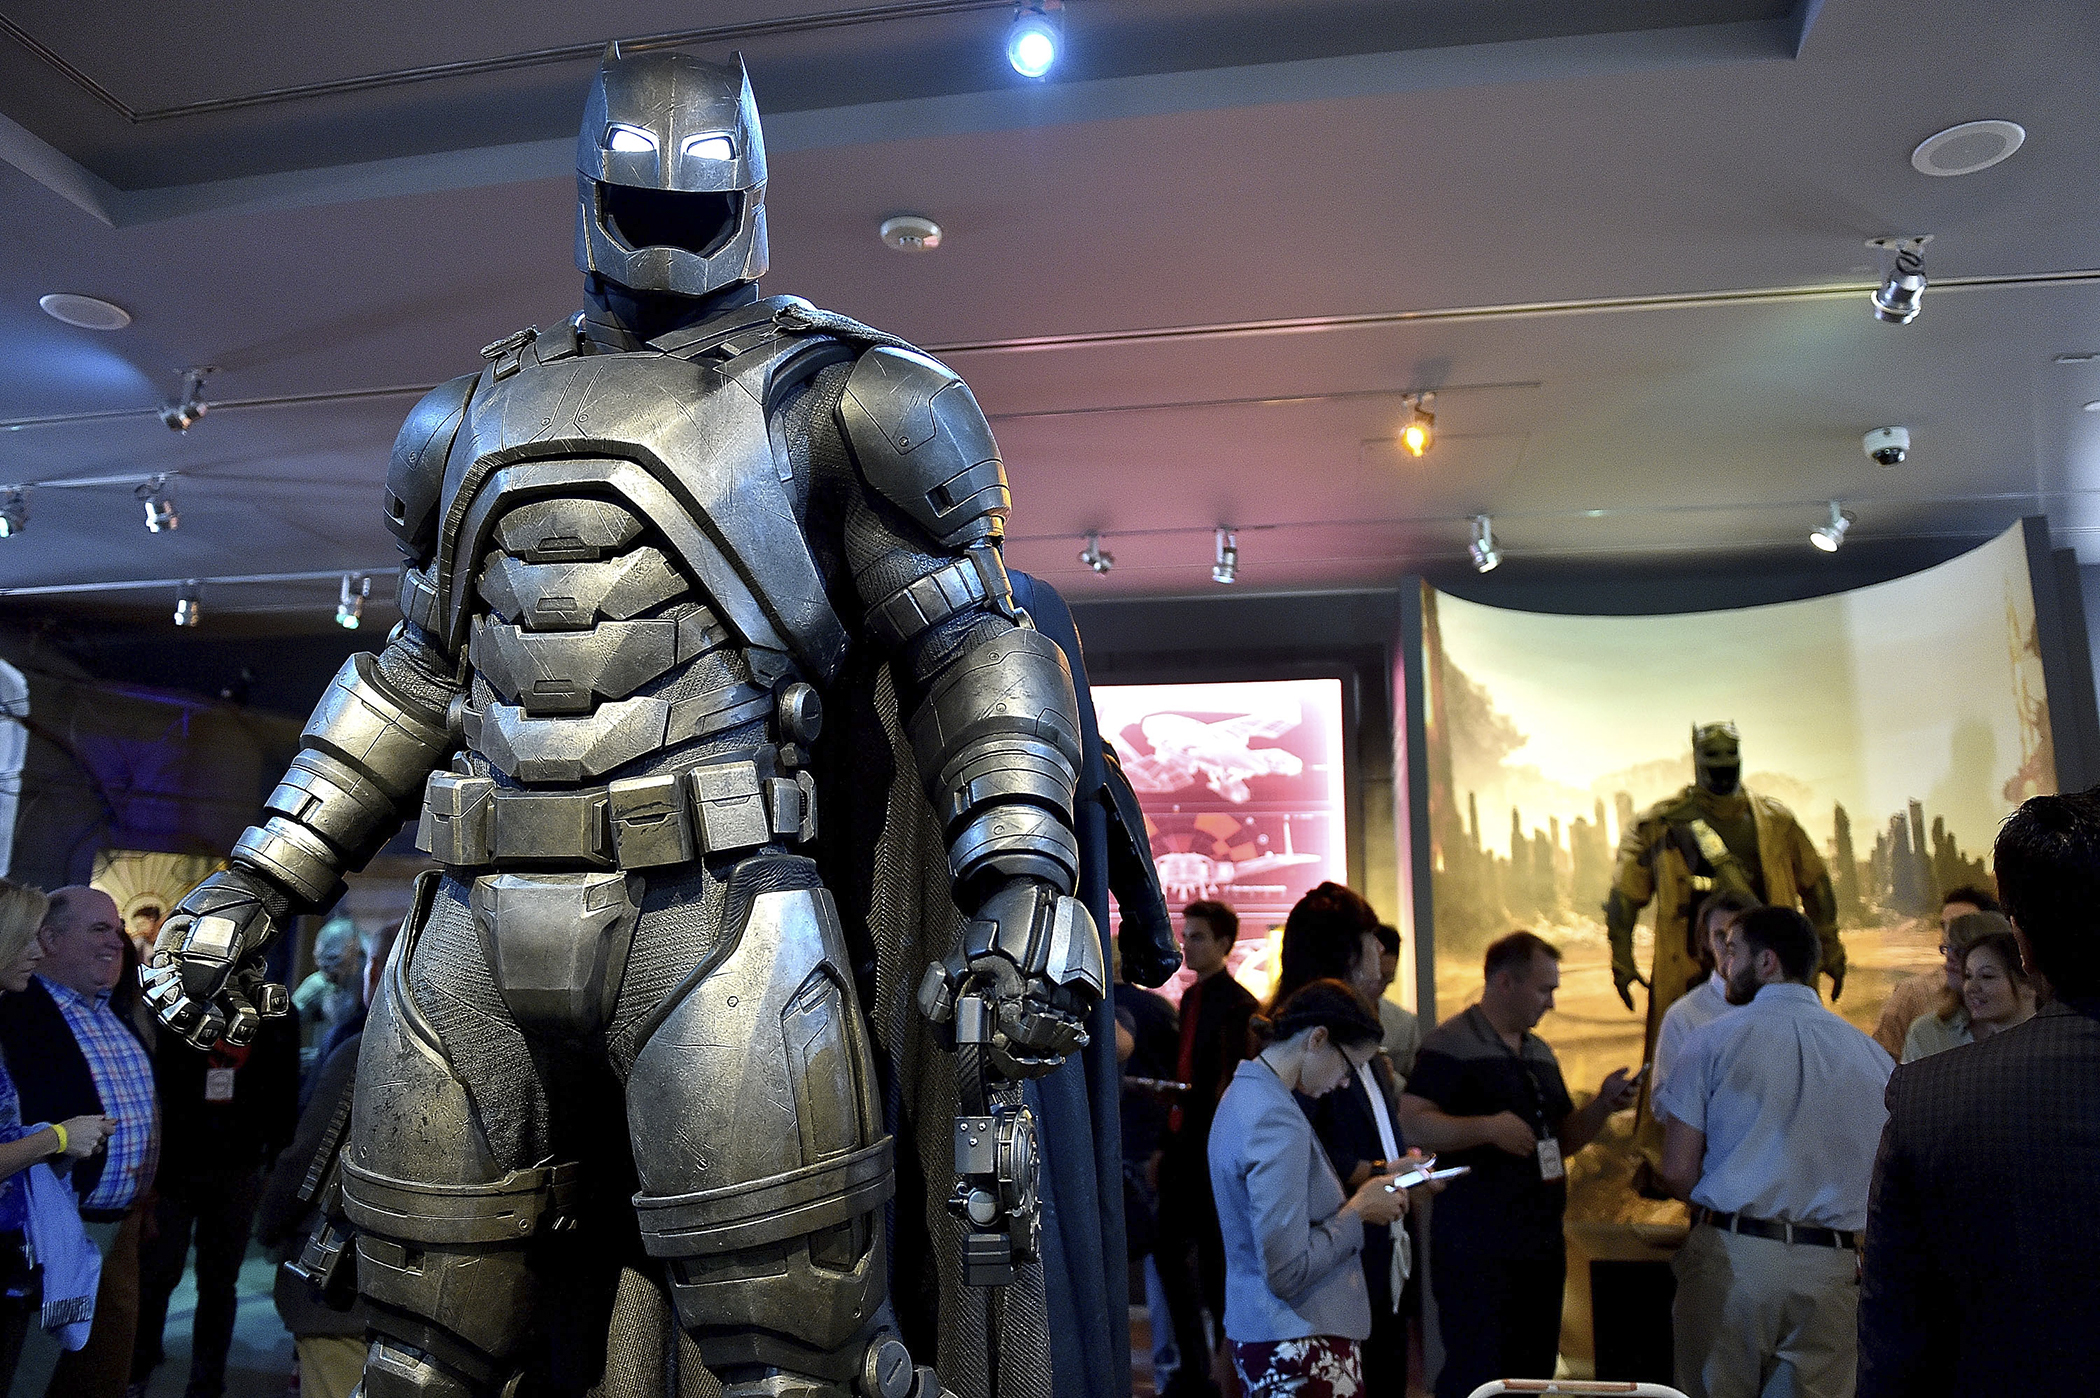 A general view of the atmosphere during Warner Bros. Studio Tour Hollywood launches DC Universe: The Exhibit - featuring the greatest Super Heroes and Super-Villains on May 18, 2016 in Hollywood, California.